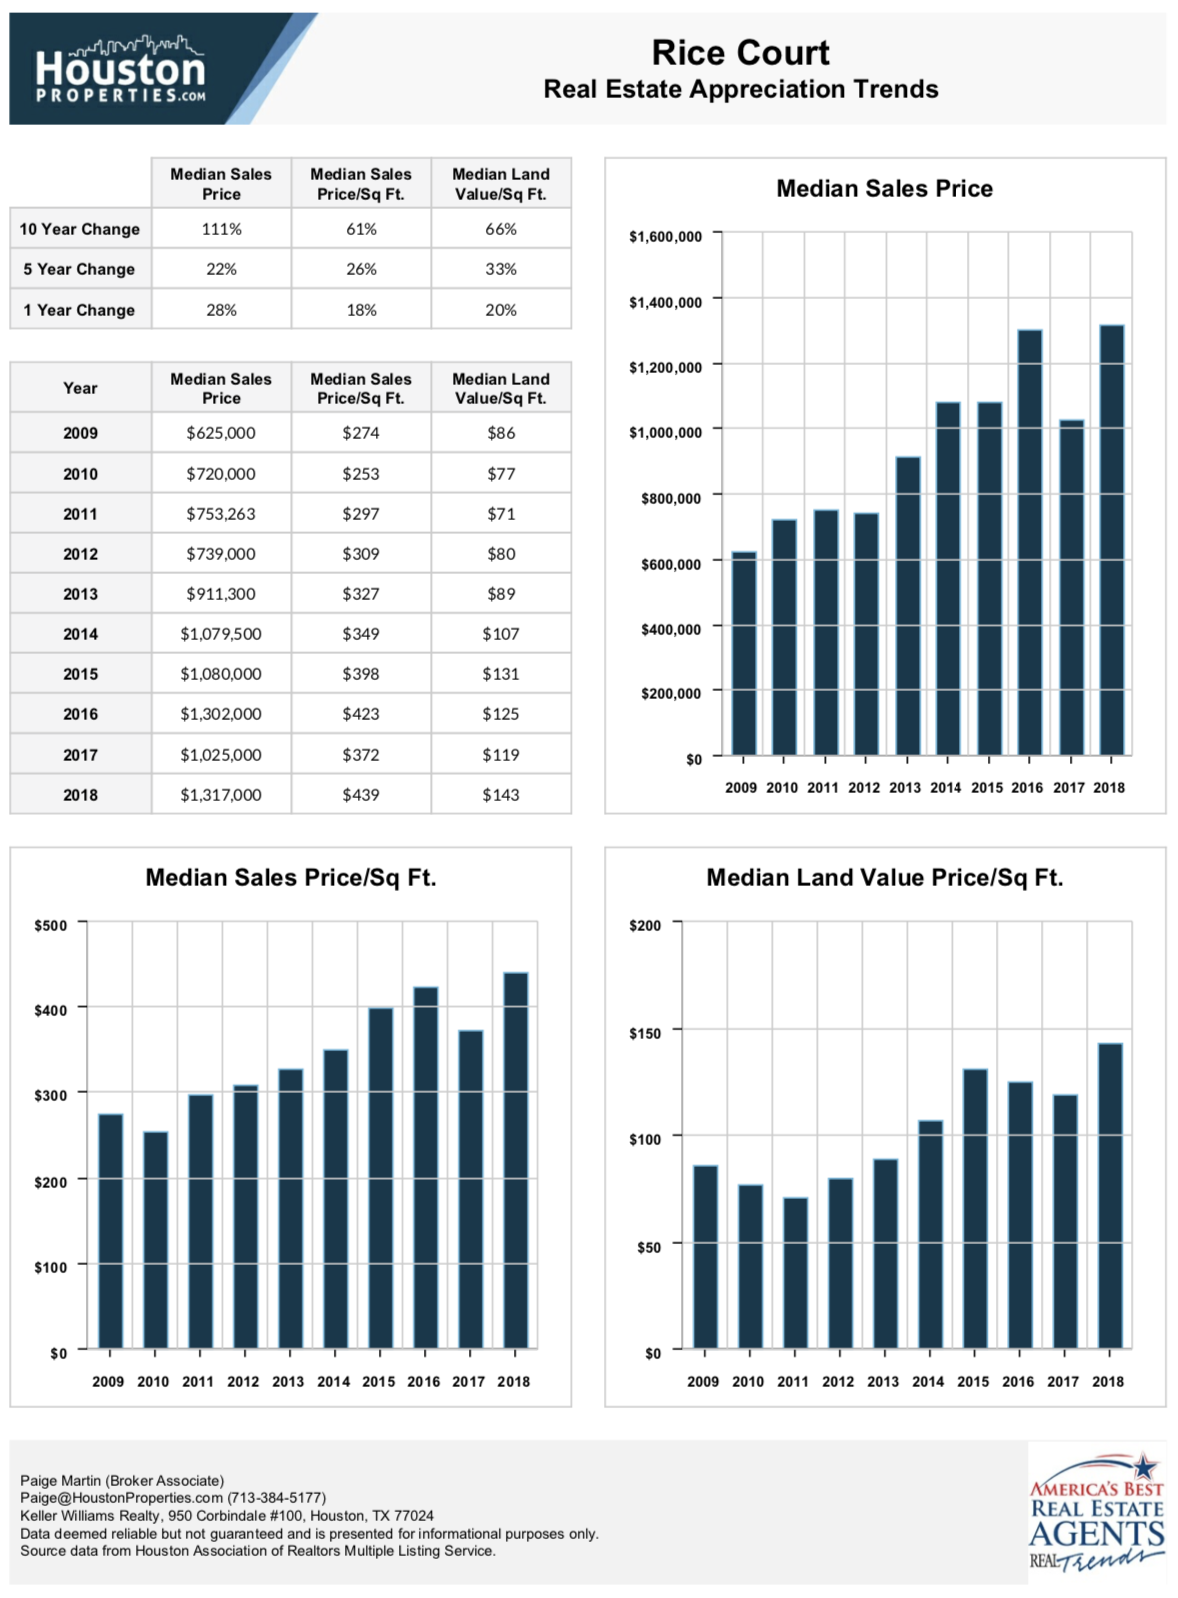 Rice Court 10 Year Real Estate Appreciation Rates